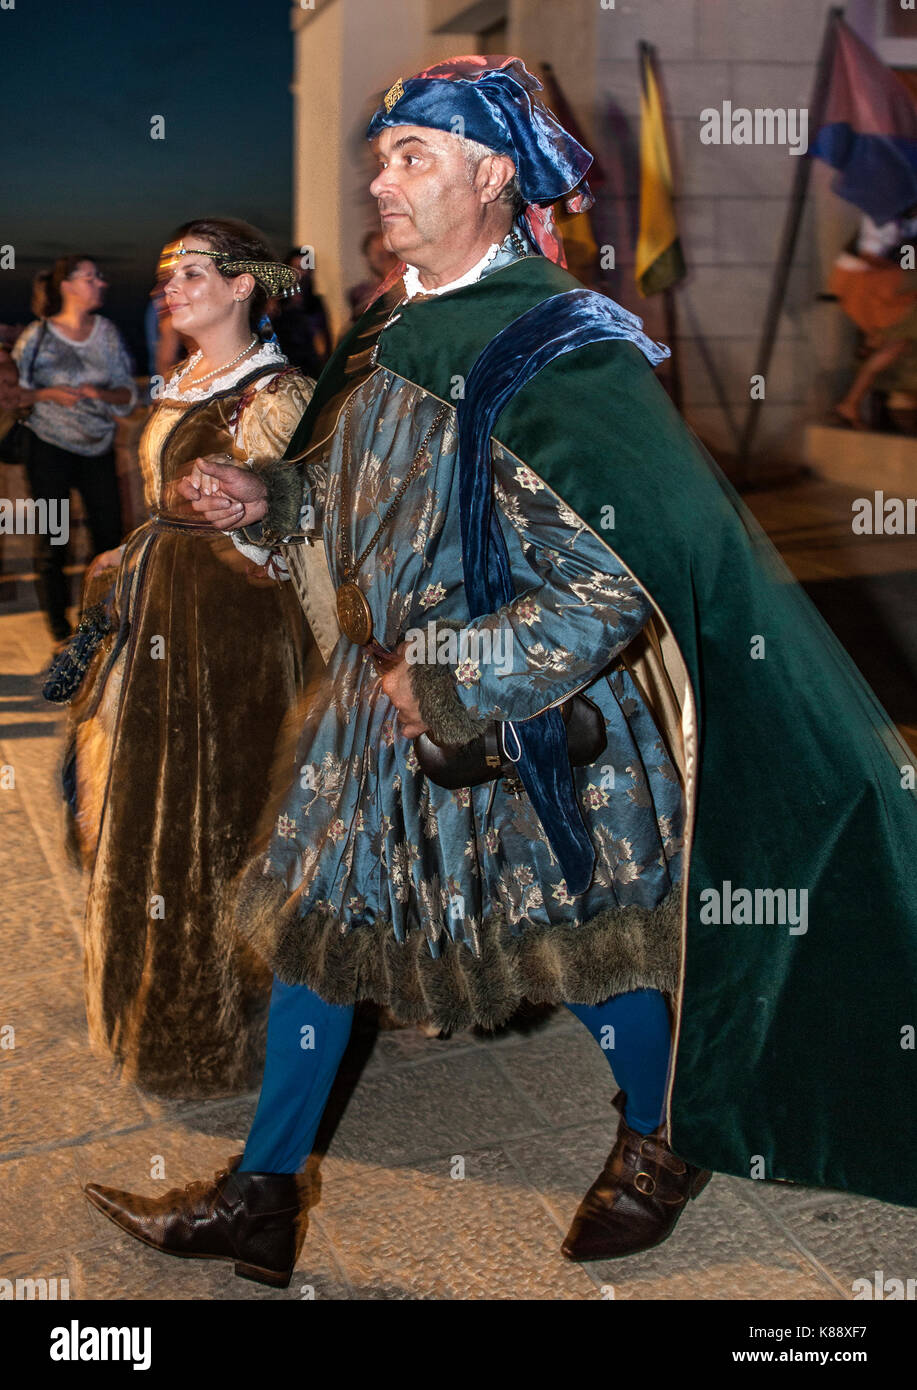 San Marinis dressed and performing in period outfits during the annual Medieval Days Festival held in San Marino. - Stock Image